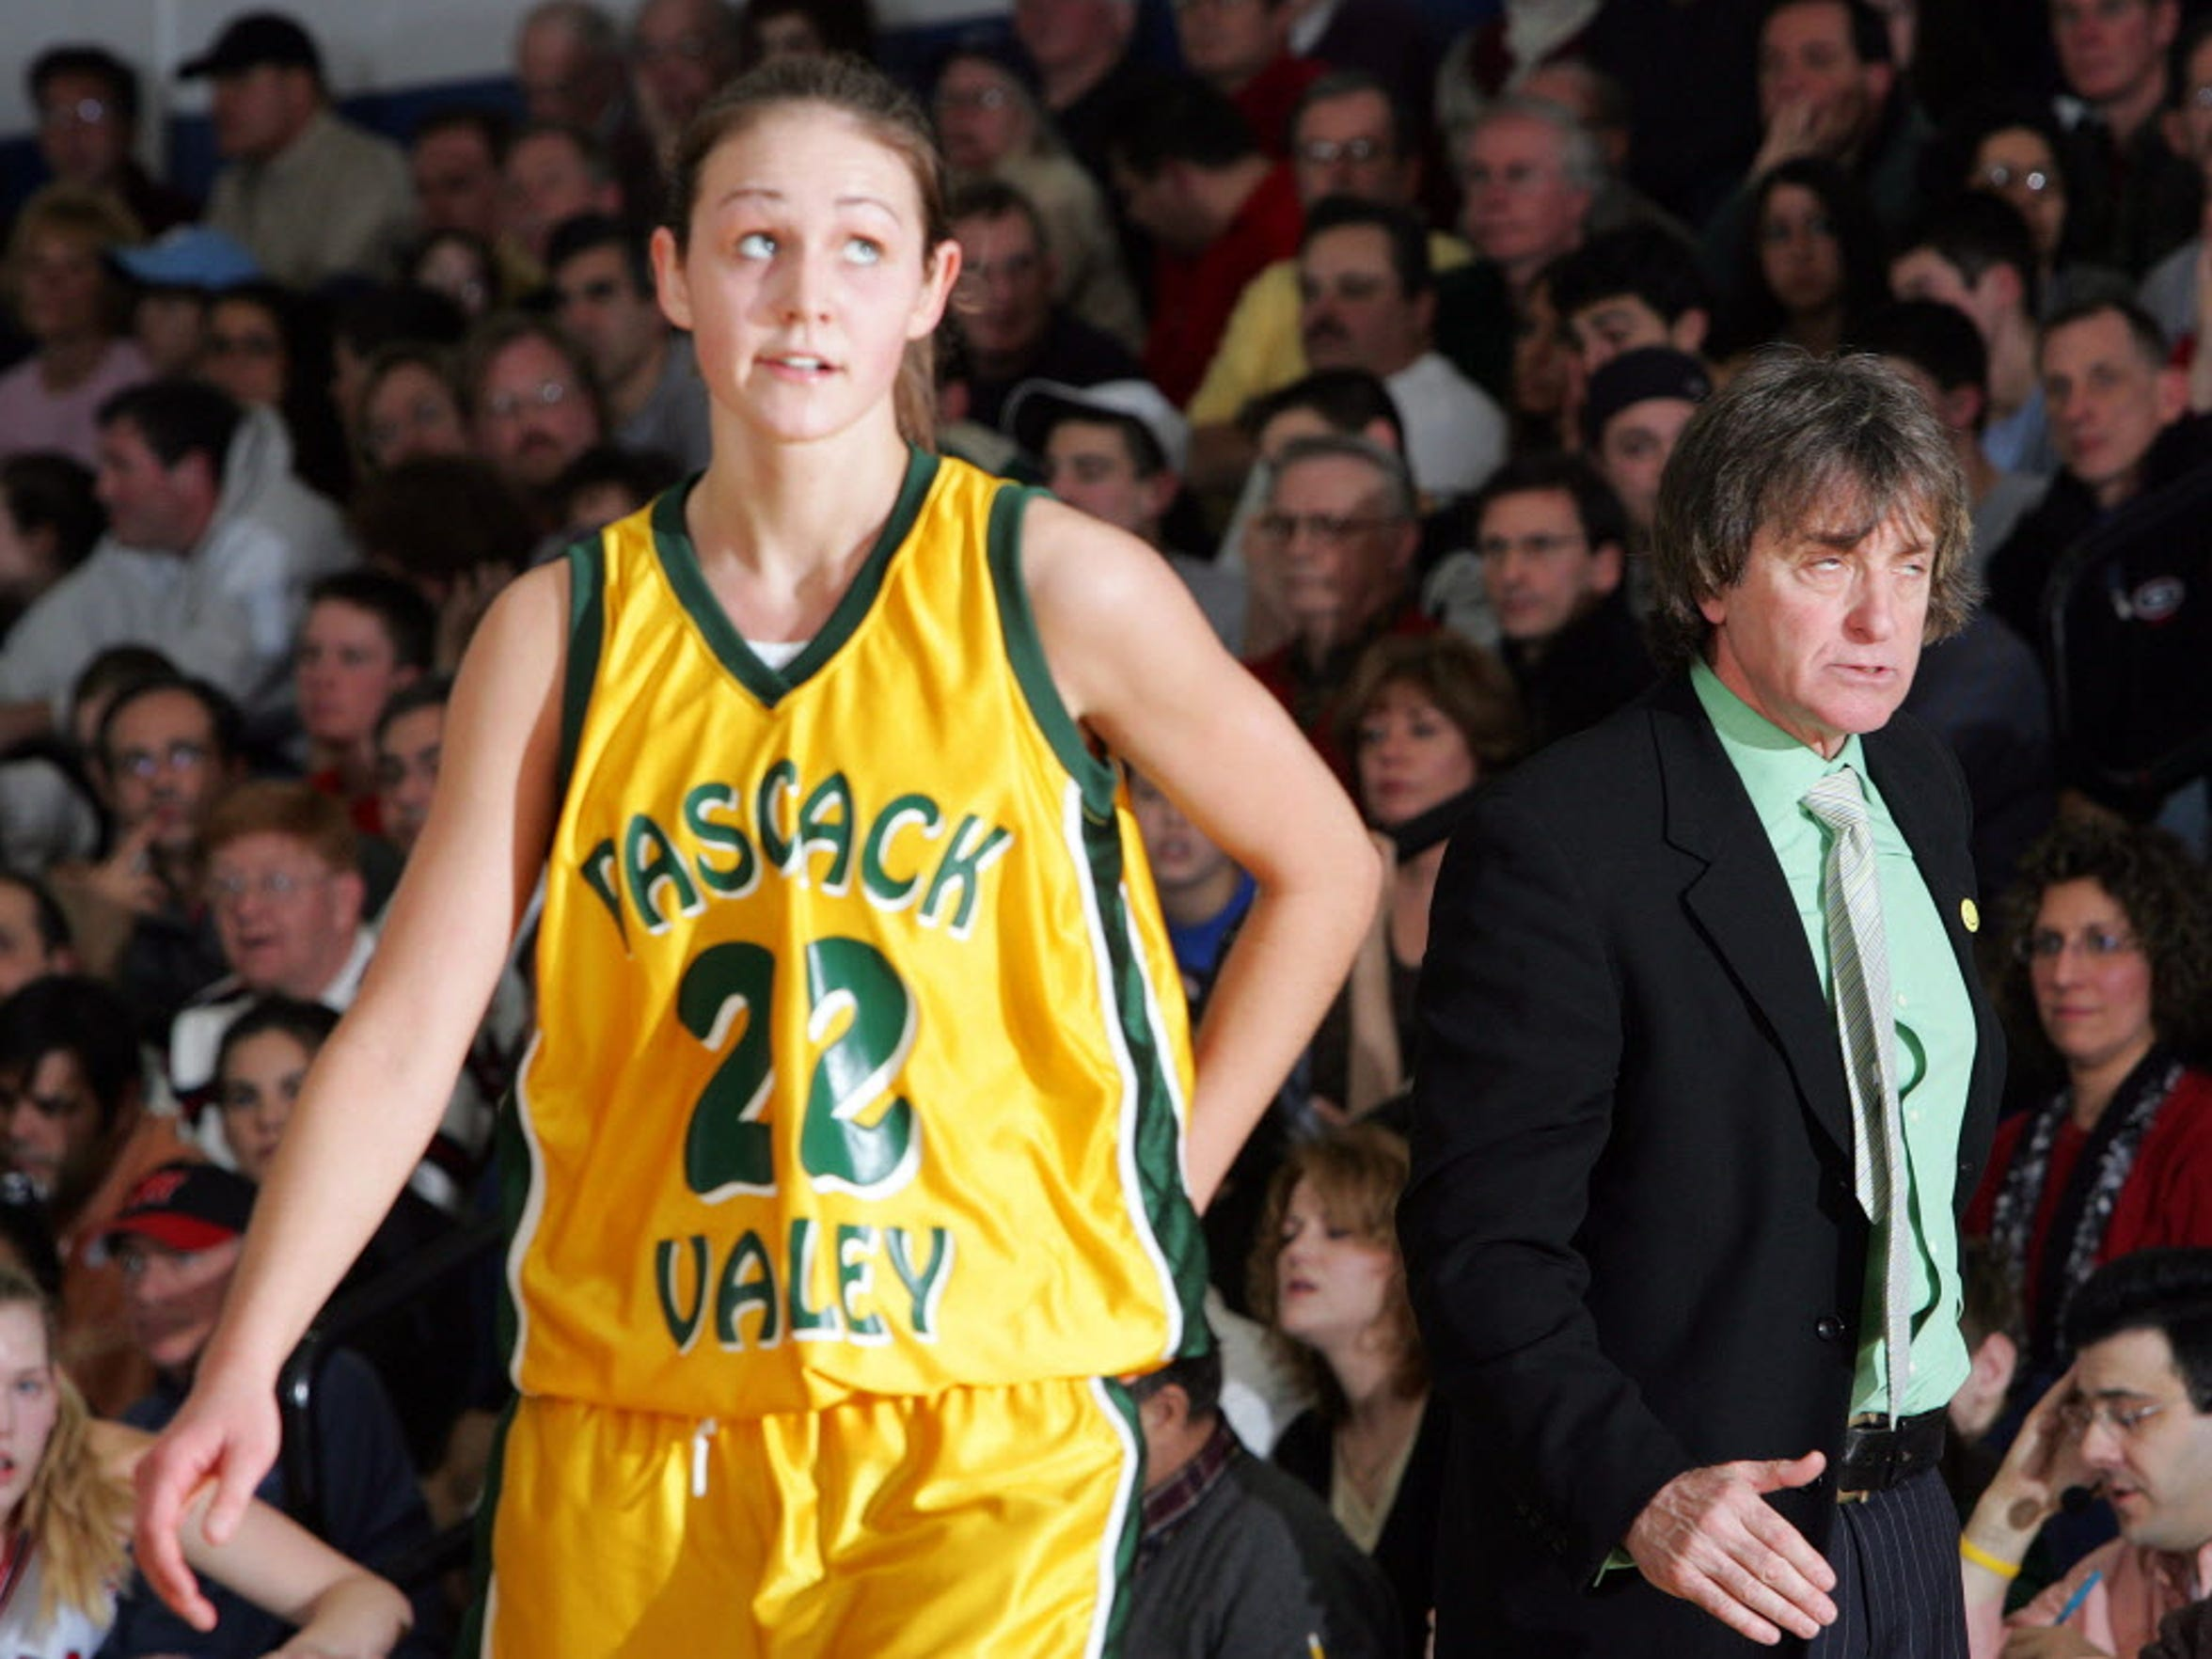 Pascack Valley player #22 Heather Zurich gets an earful